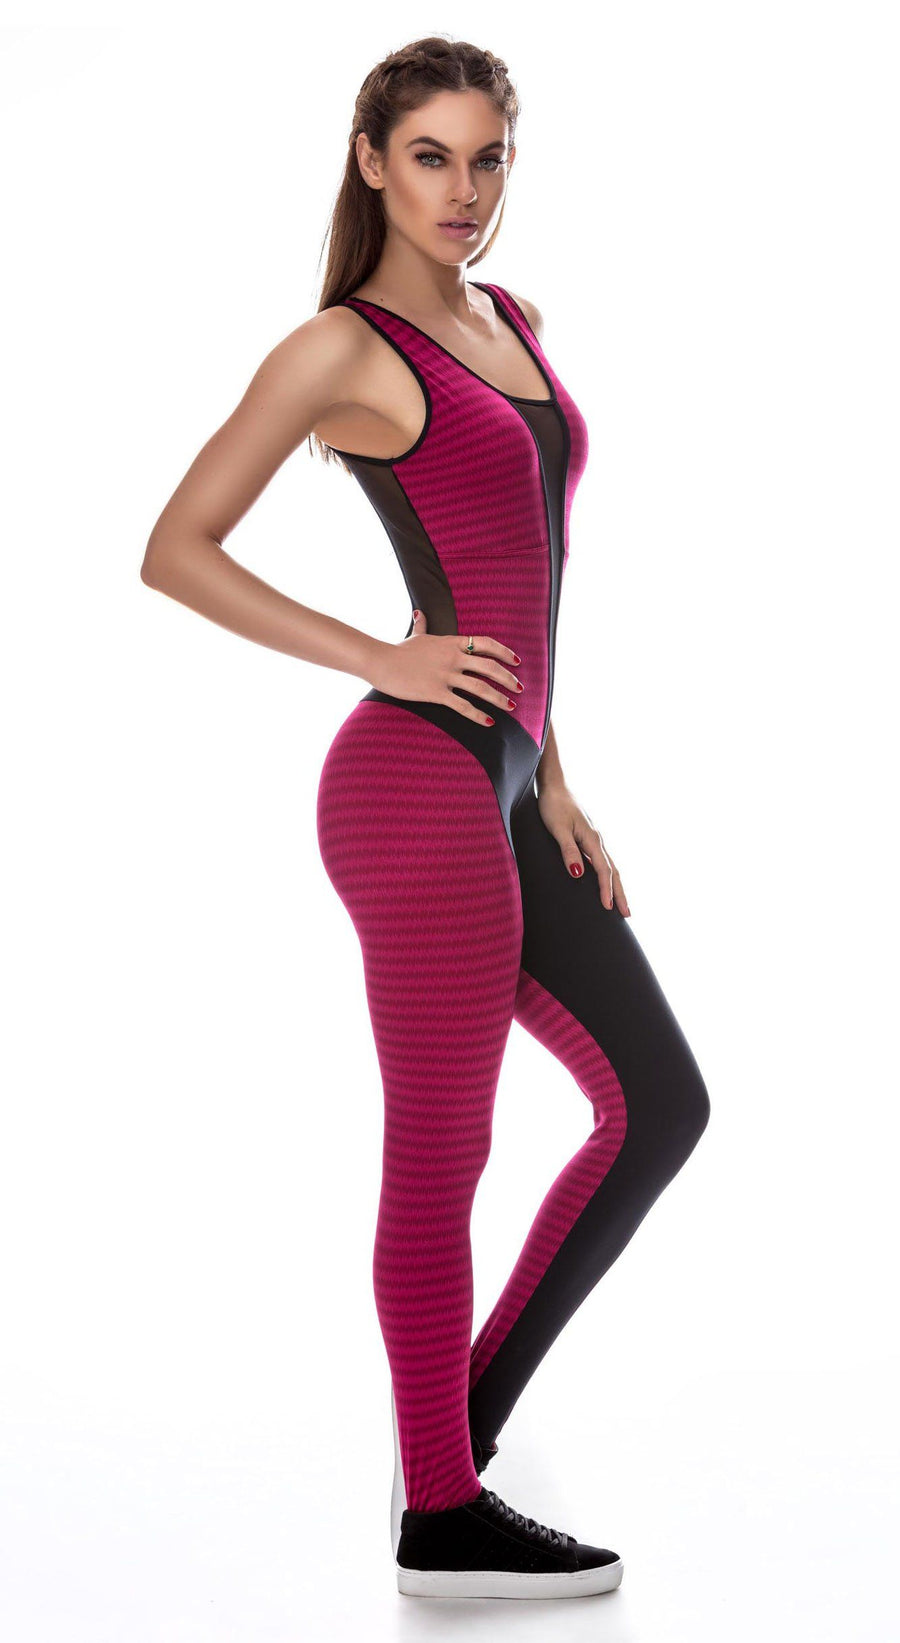 Brazilian Workout Jumpsuit - Electric Fit Catsuit Red & Black